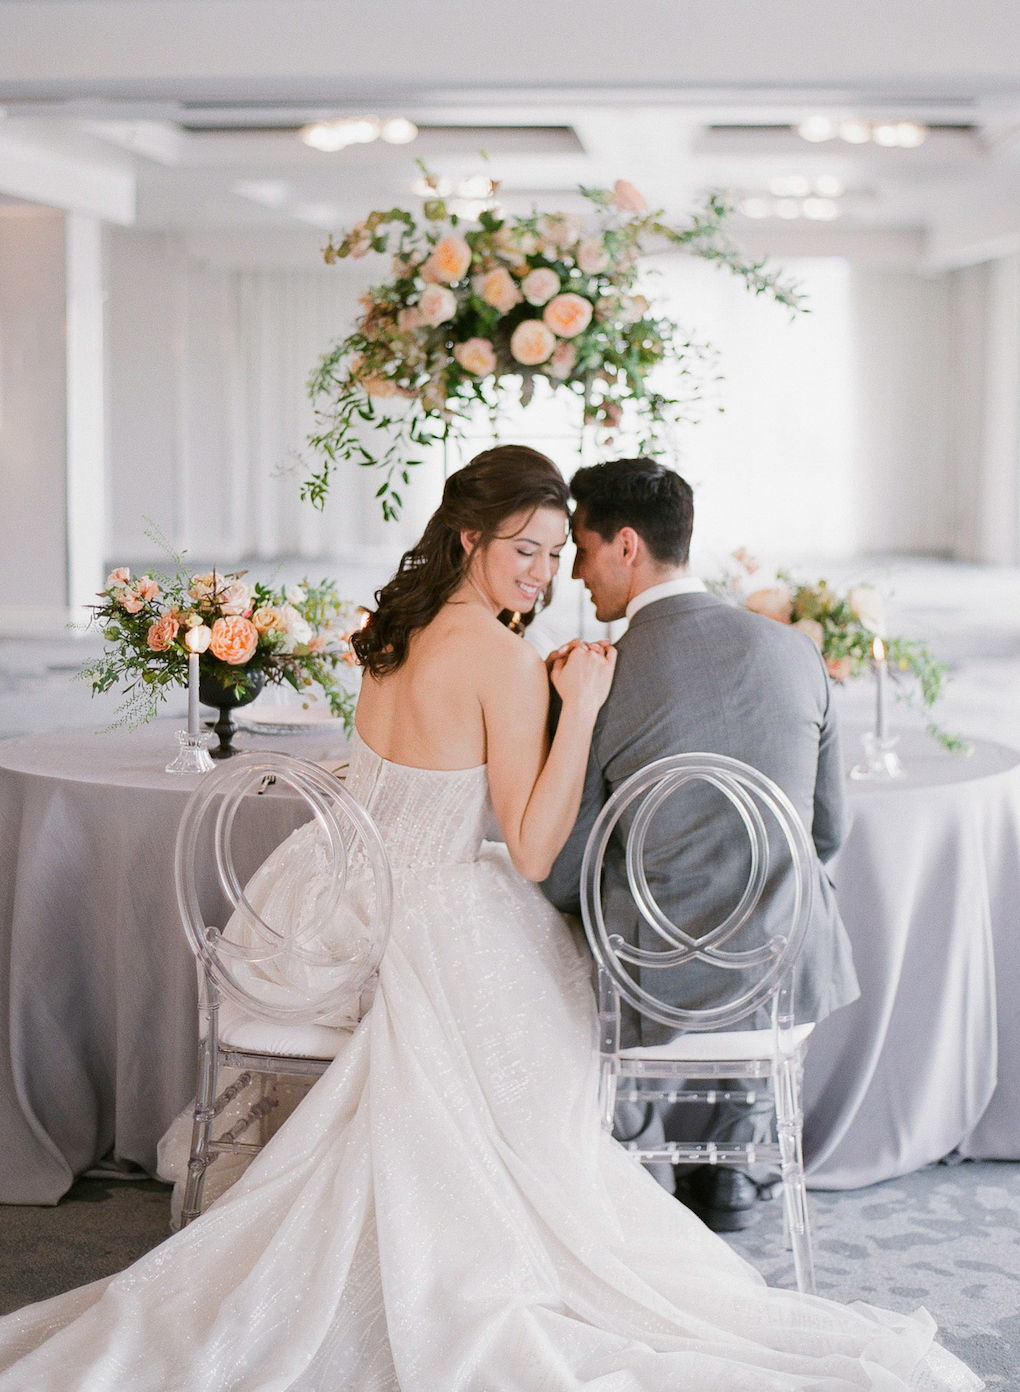 Romantic Table Photos for Your Wedding: Soft and Subtle Palettes of Spring Blossoms | Editorial Shoot at The Renaissance Pittsburgh by Exhale Events. See more inspiration at exhale-events.com!